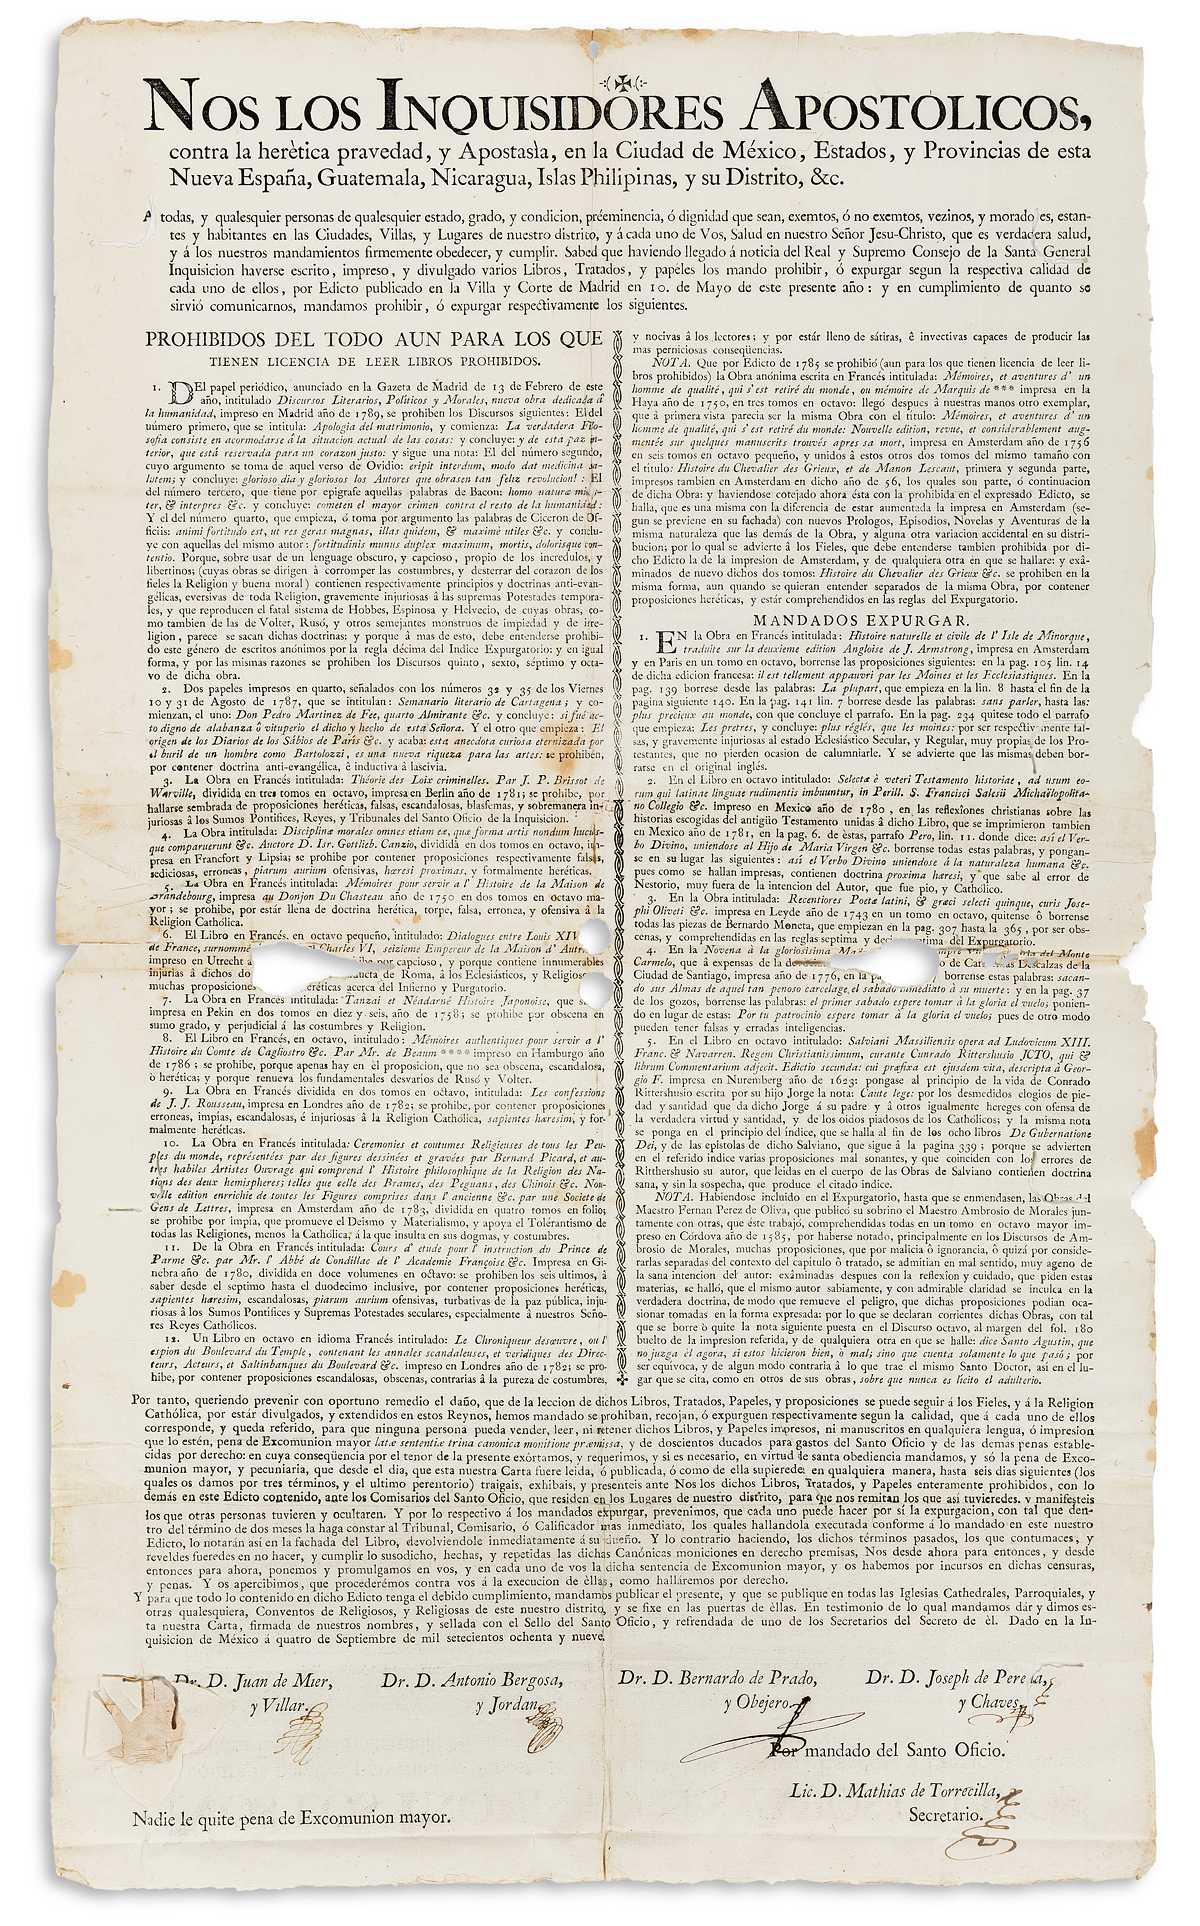 (MEXICAN-IMPRINT--1789)-Inquisition-broadside-forbidding-sev